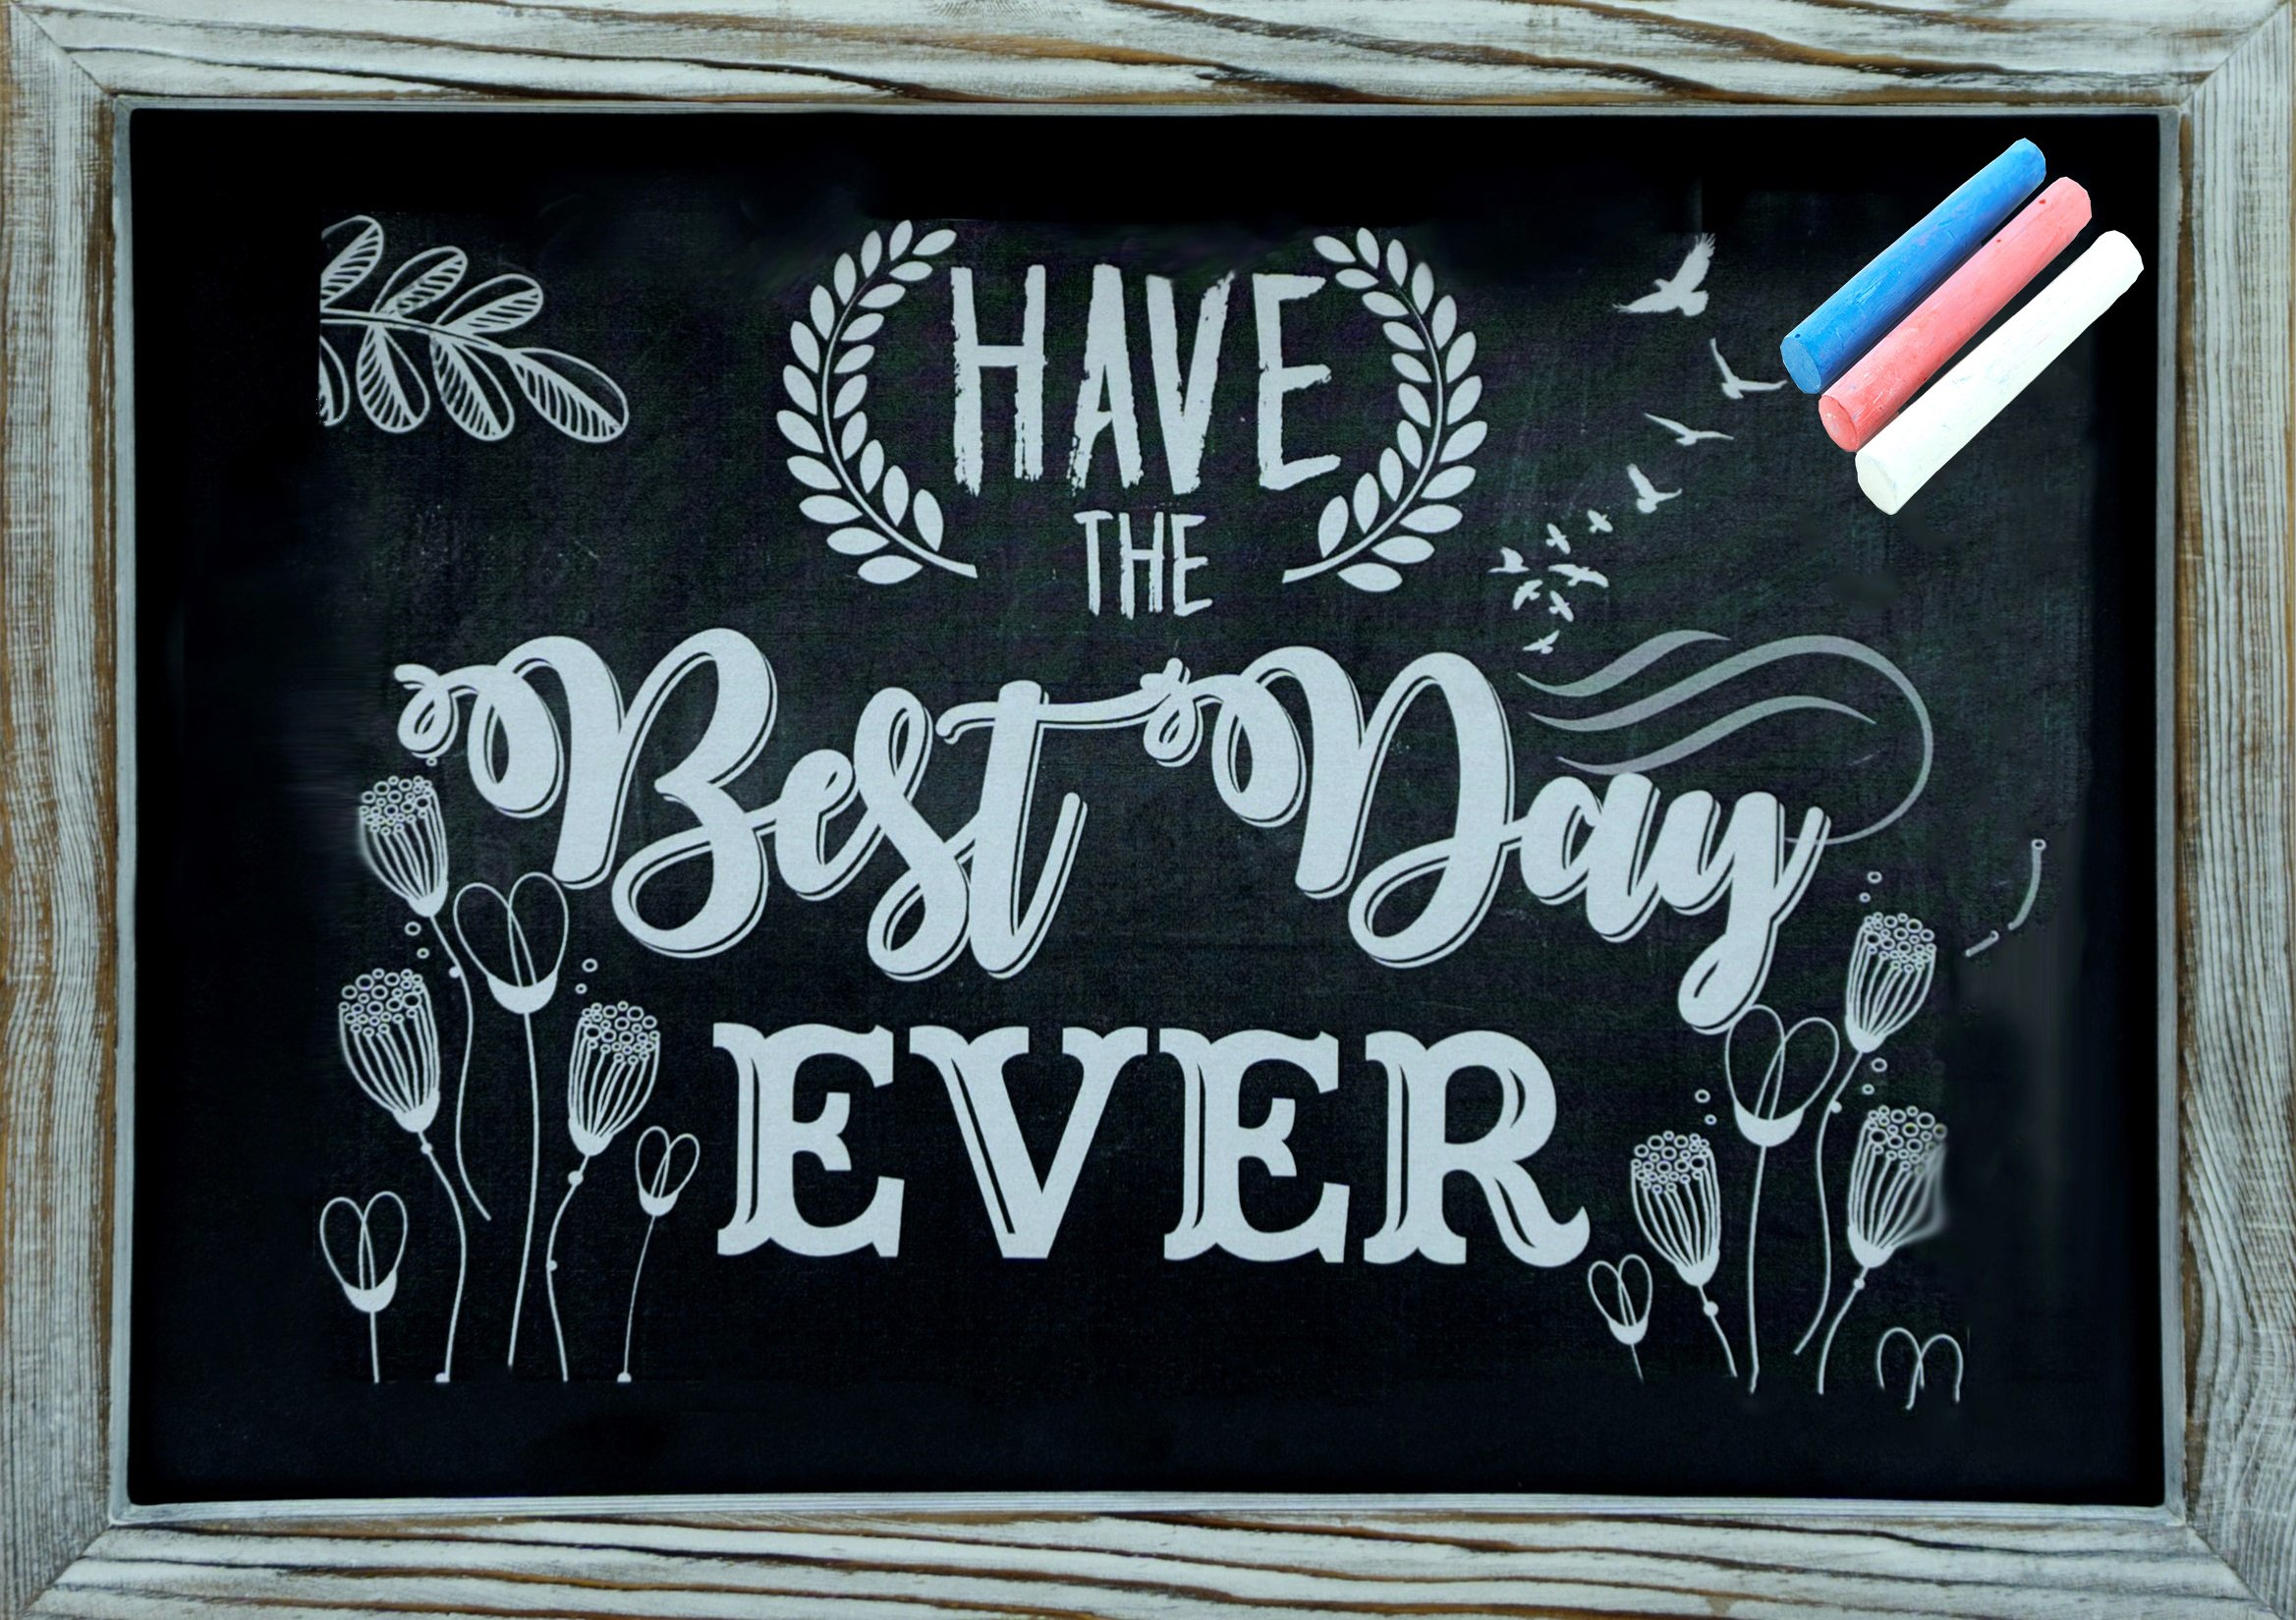 Rustic Wooden Framed Chalkboard 15'' x 11'' Easy to Clean, Non-Porous, Stand or Hanged, Comes with 3 Color Chalks - Perfect Decor for Your Home, Bedroom, Kitchen, Office, Wedding, Restaurant & Bar